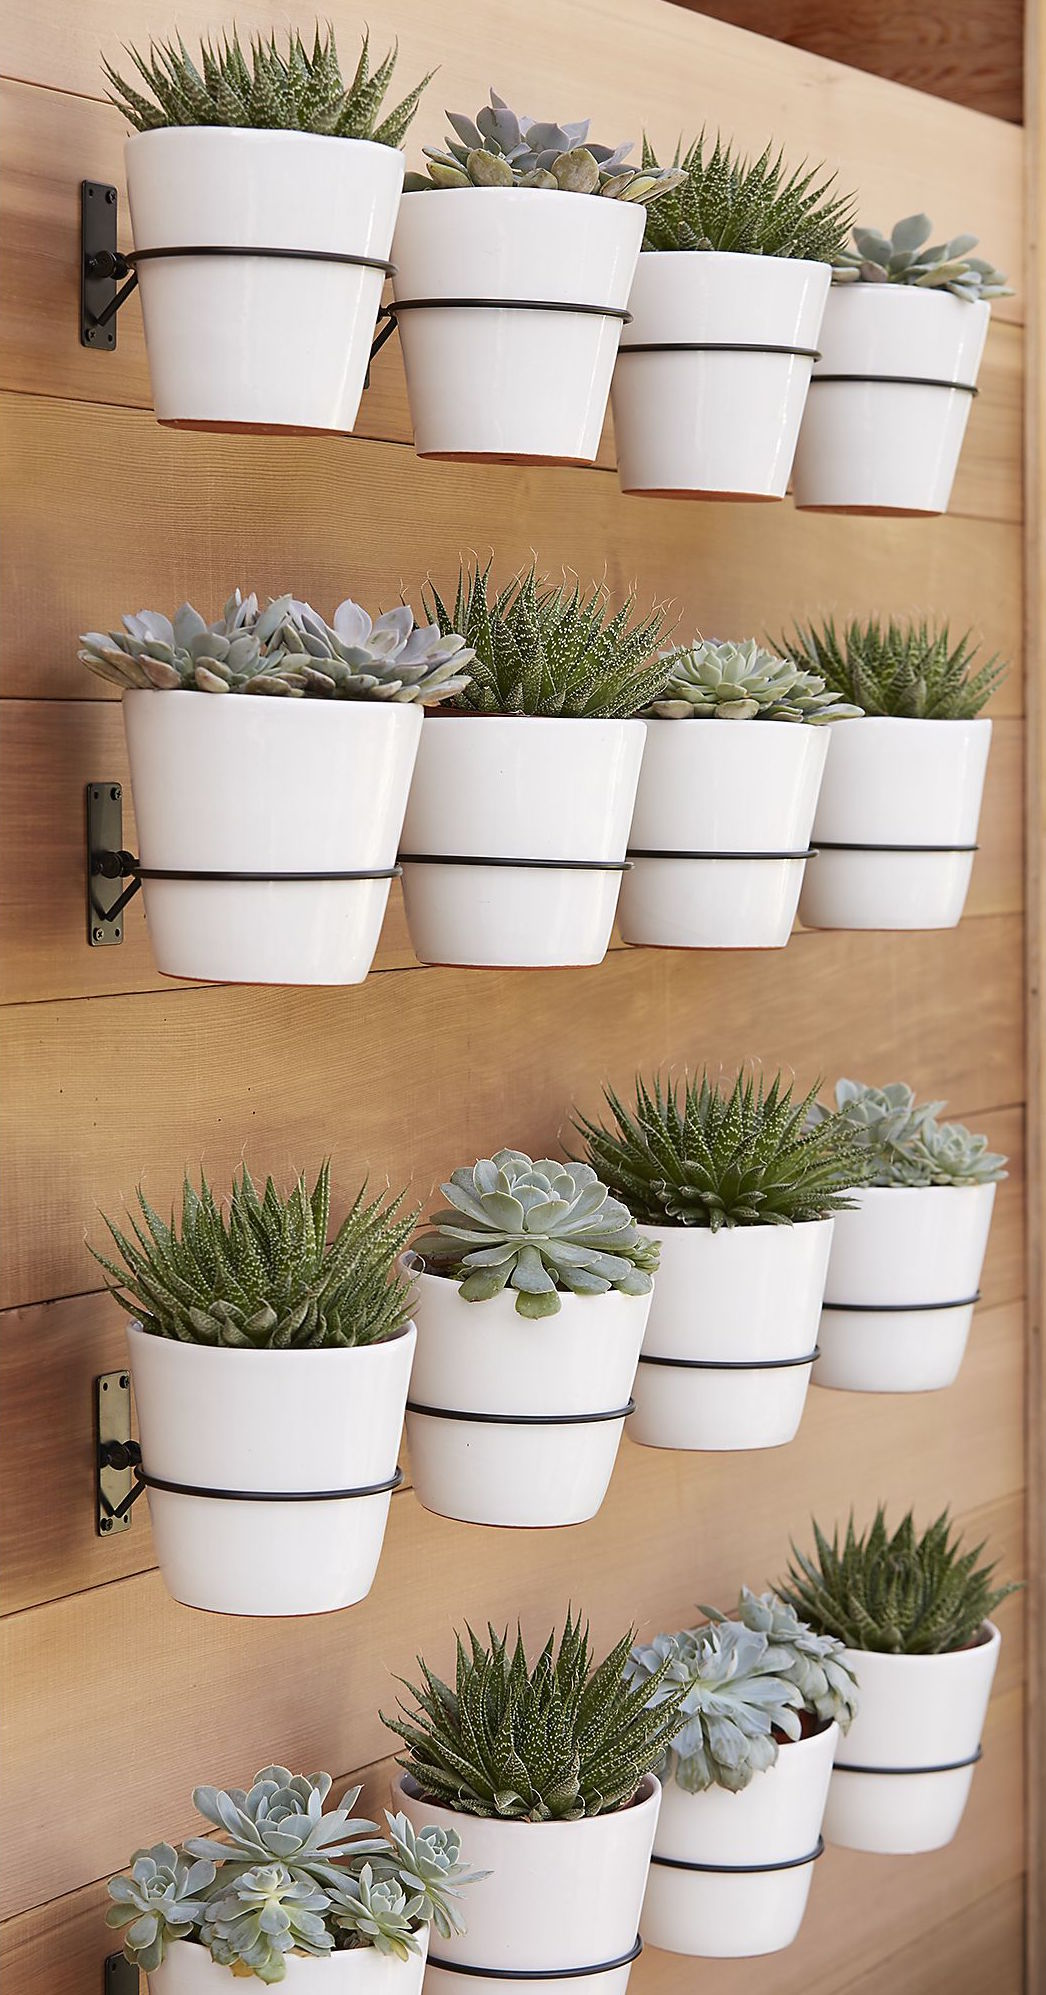 pottery barn wall planter, pottery barn outdoor pottery, west elm, west elm outdoor pottery, outdoor landscaping ideas